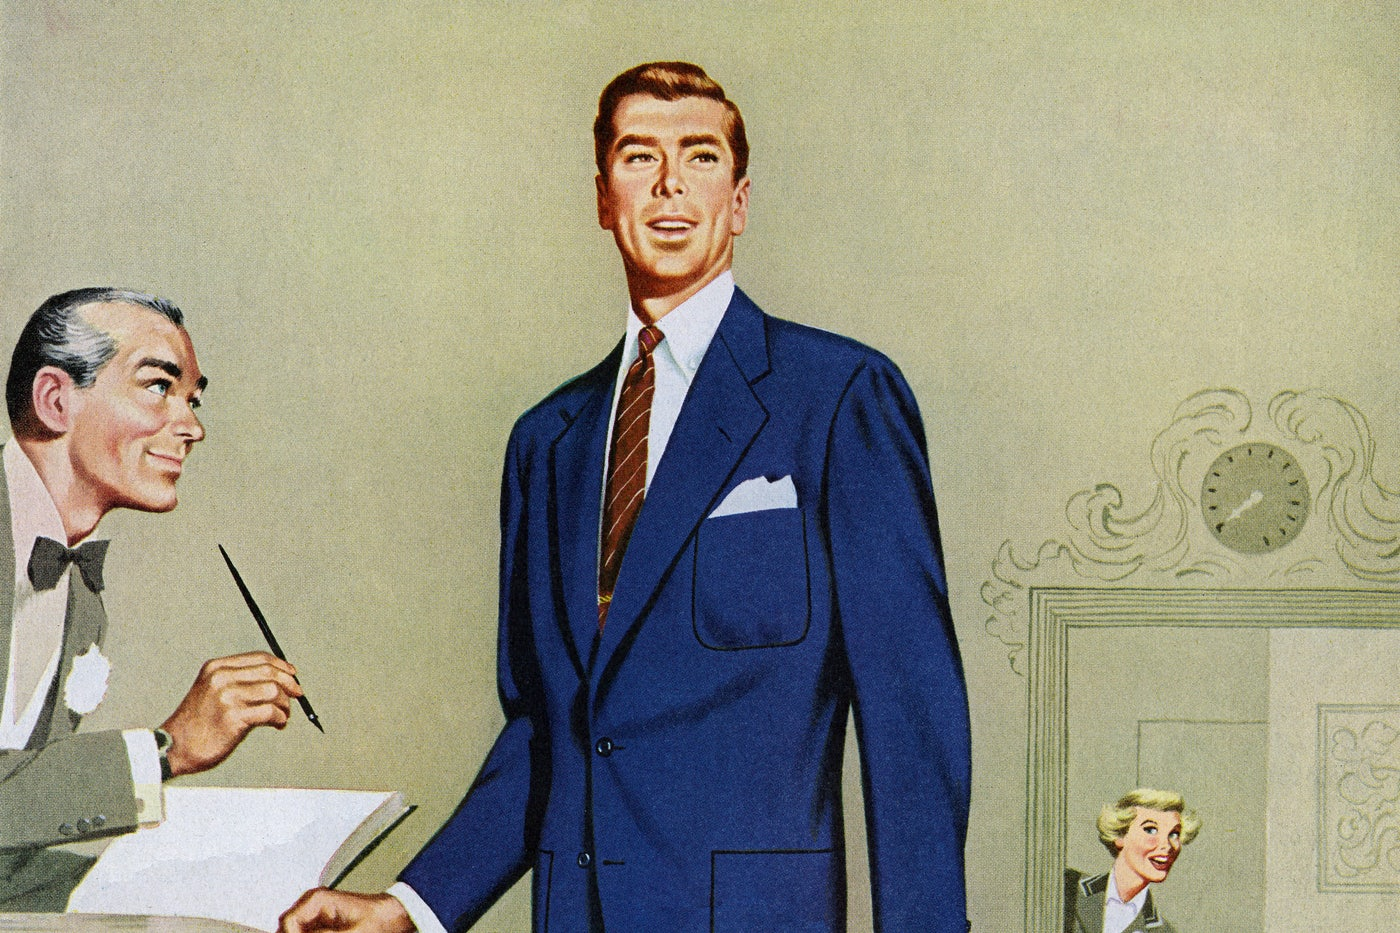 A 1950s illustration of a businessman standing by a desk